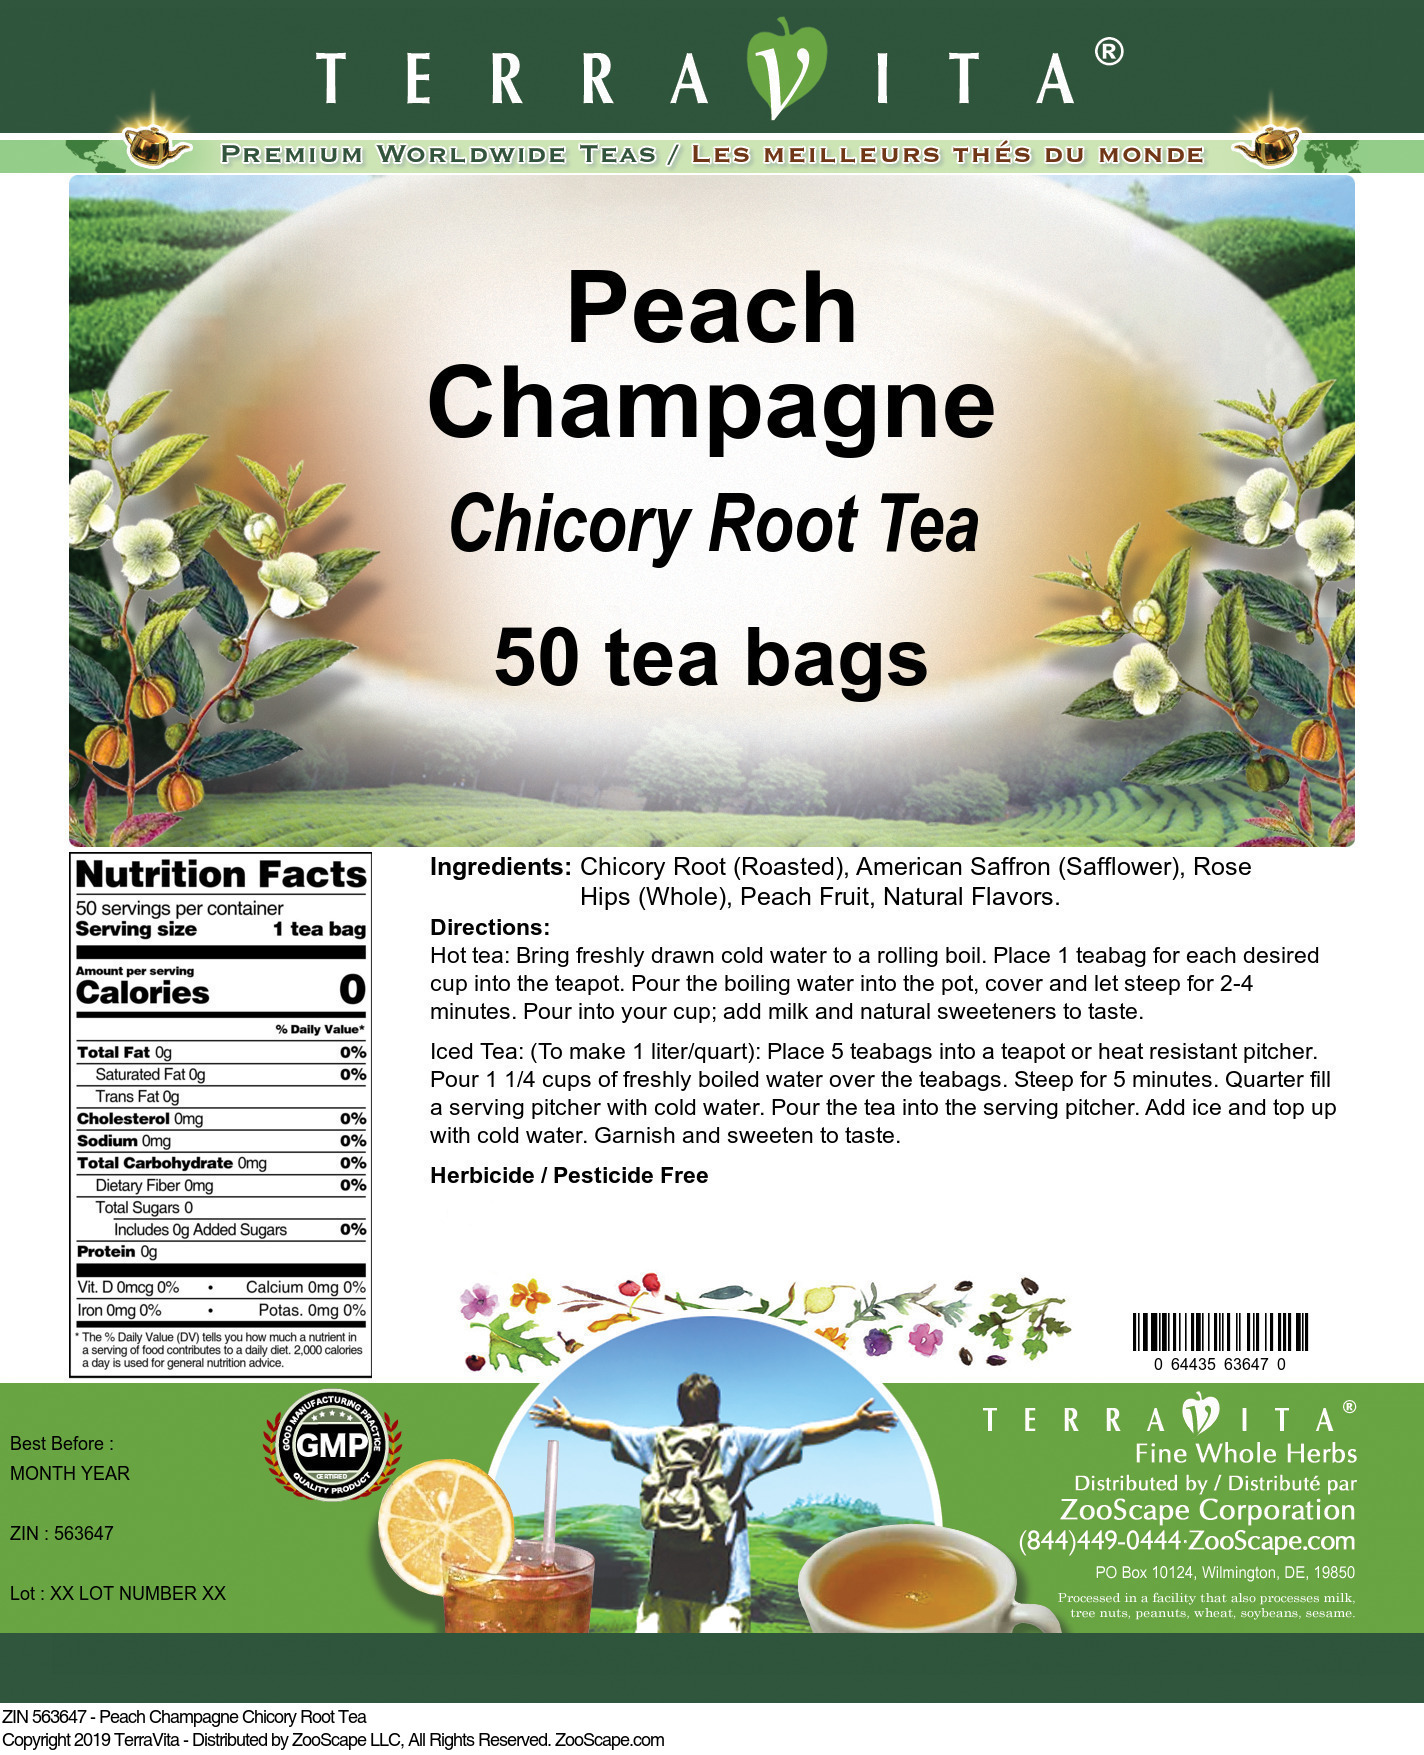 Peach Champagne Chicory Root